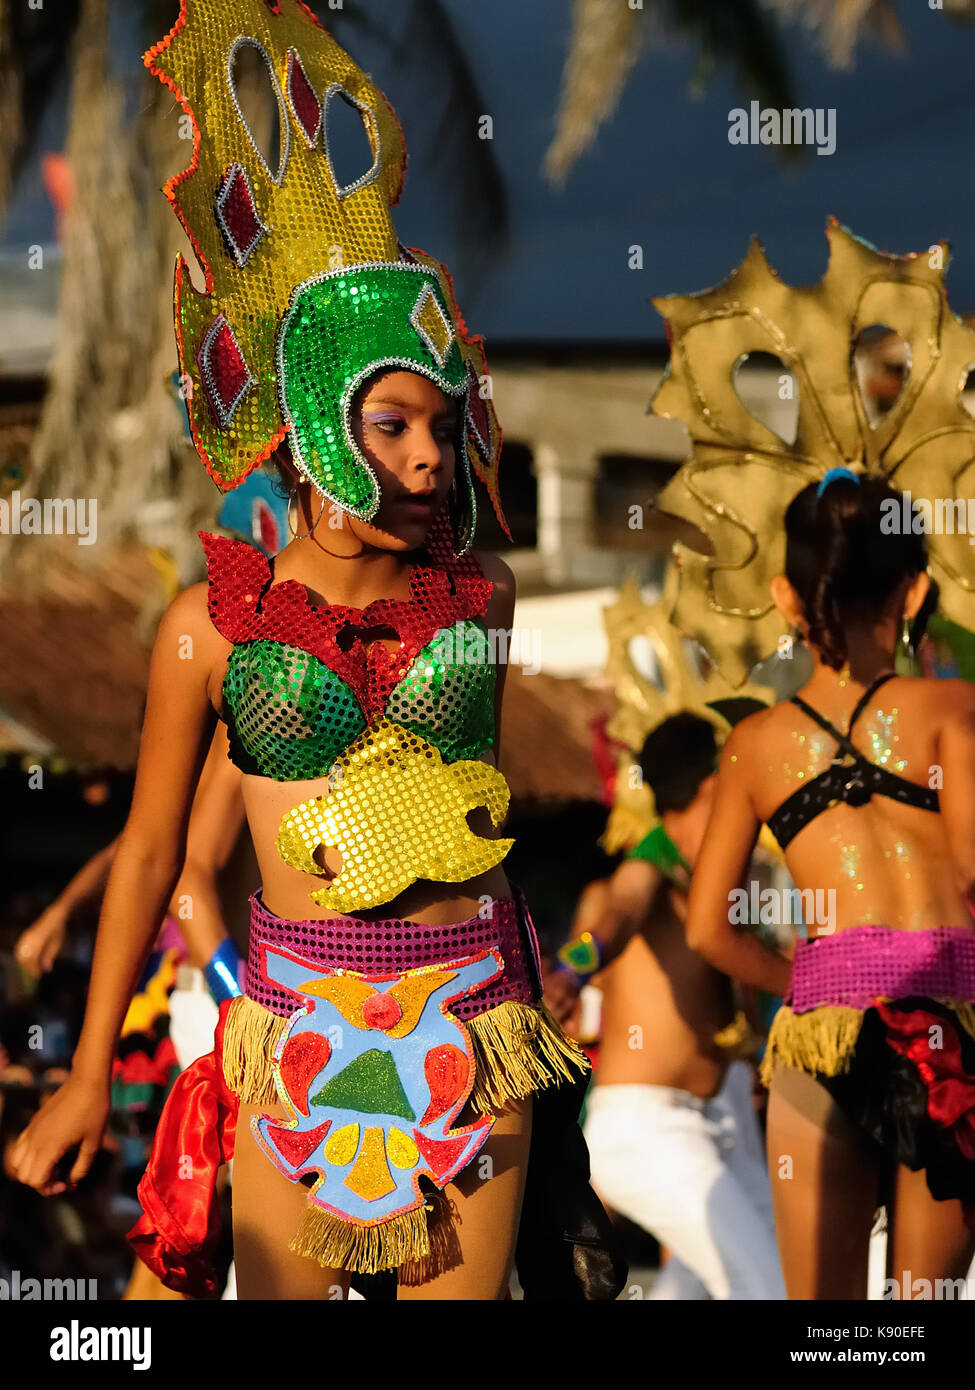 SAN JUAN, NICARAGUA - NOVEMBER 24: Portrait of the participant in the parade in the city San Juan of Nicaragua in Stock Photo